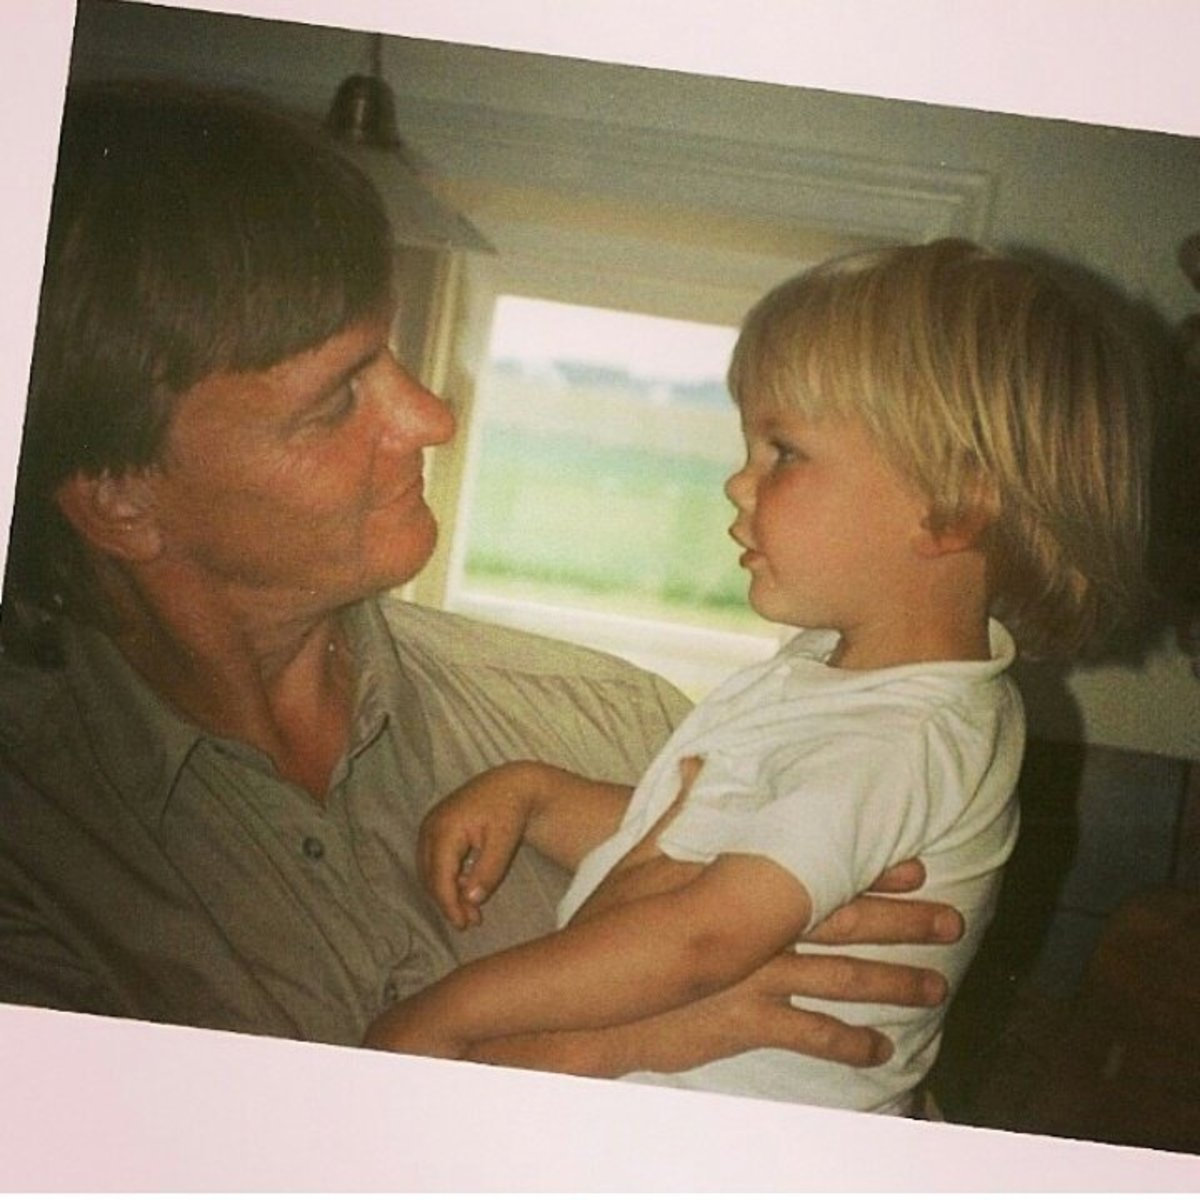 Tom Bergling (Avicii) as a child. The innocence of youth.